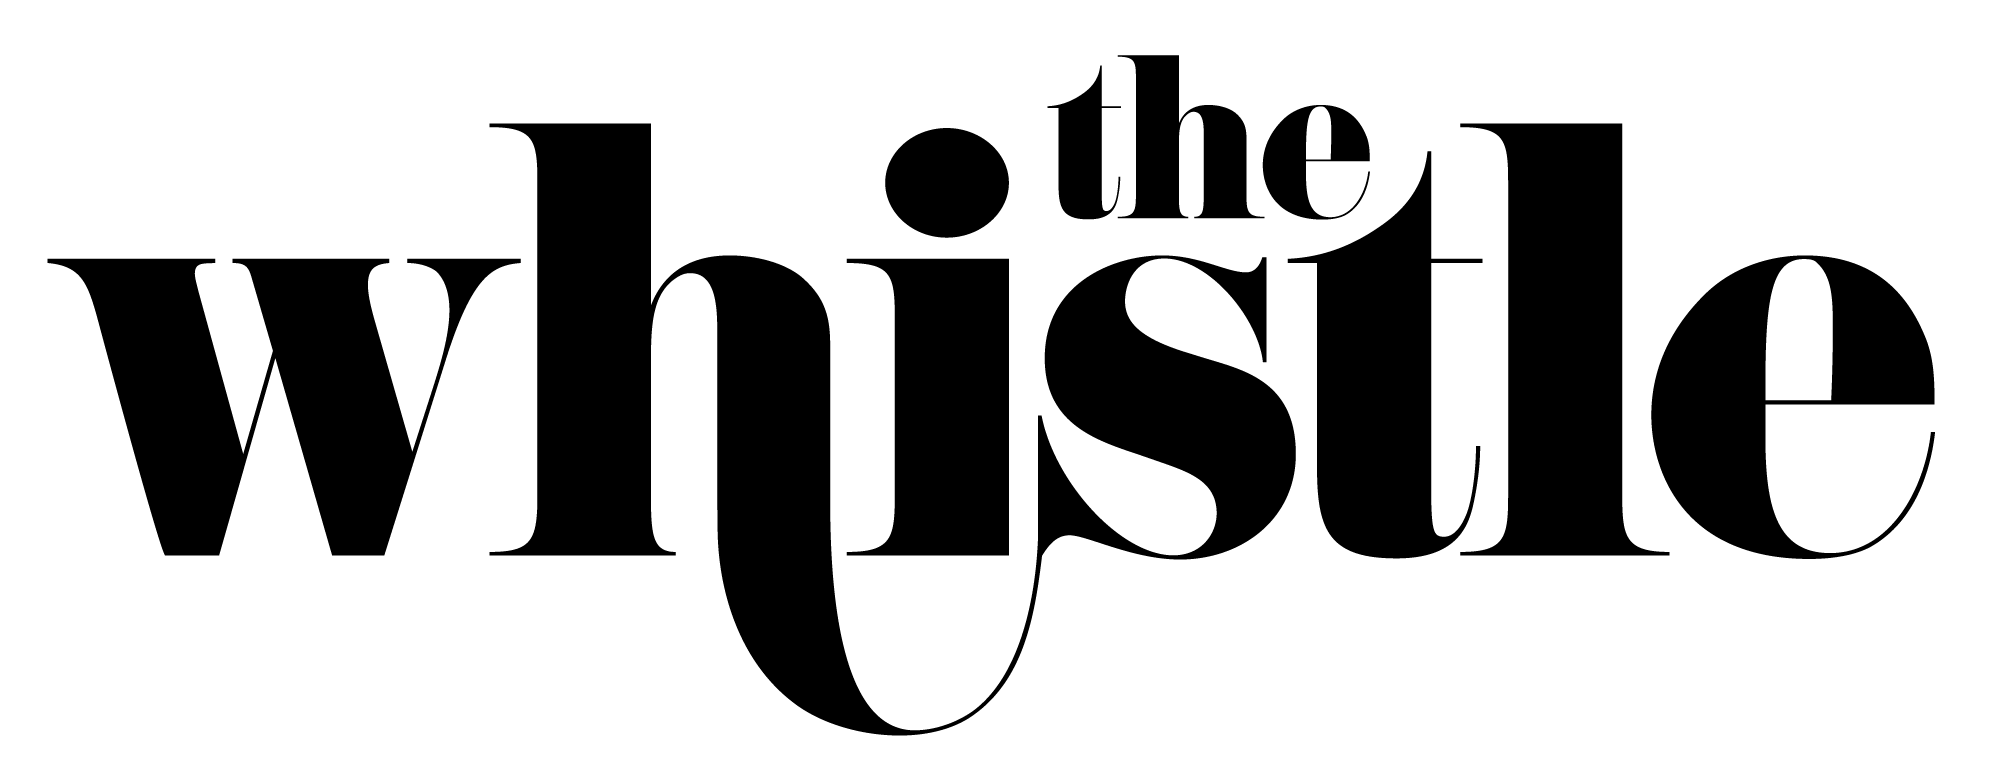 The Whistle Logo Black-01.png